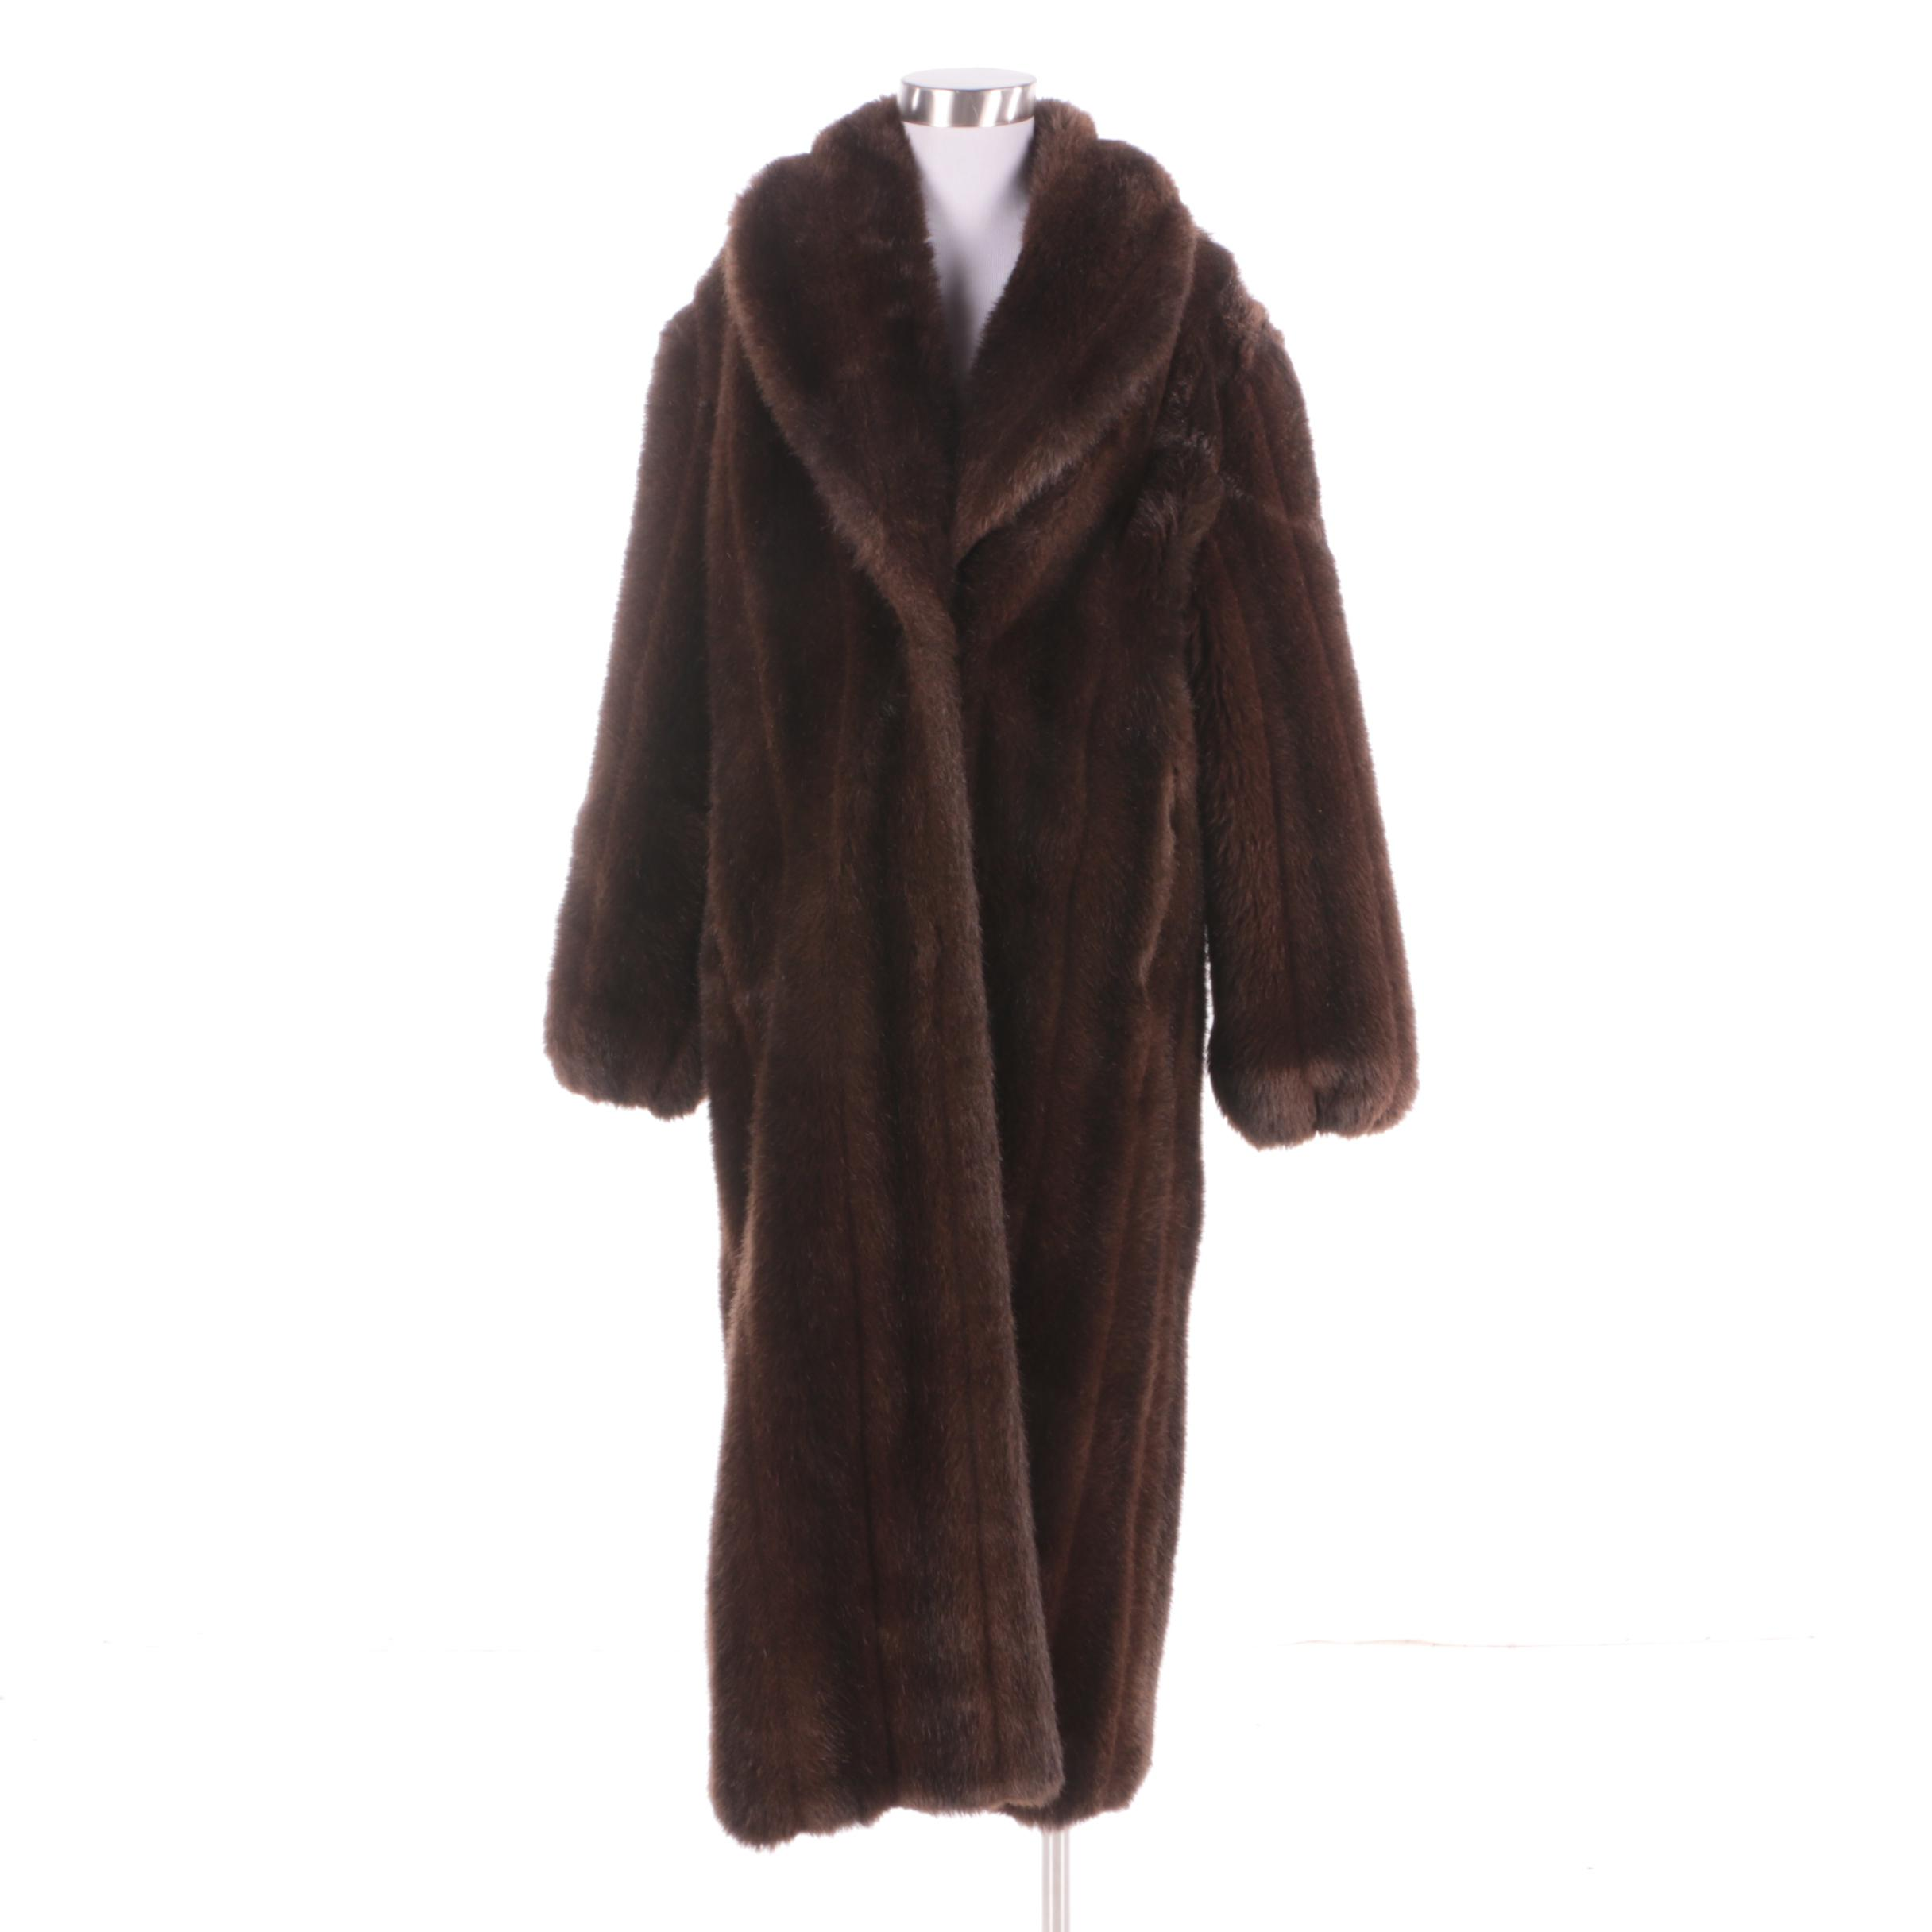 Women s Monterey Fashions Brown Faux Fur Coat   EBTH Women s Monterey Fashions Brown Faux Fur